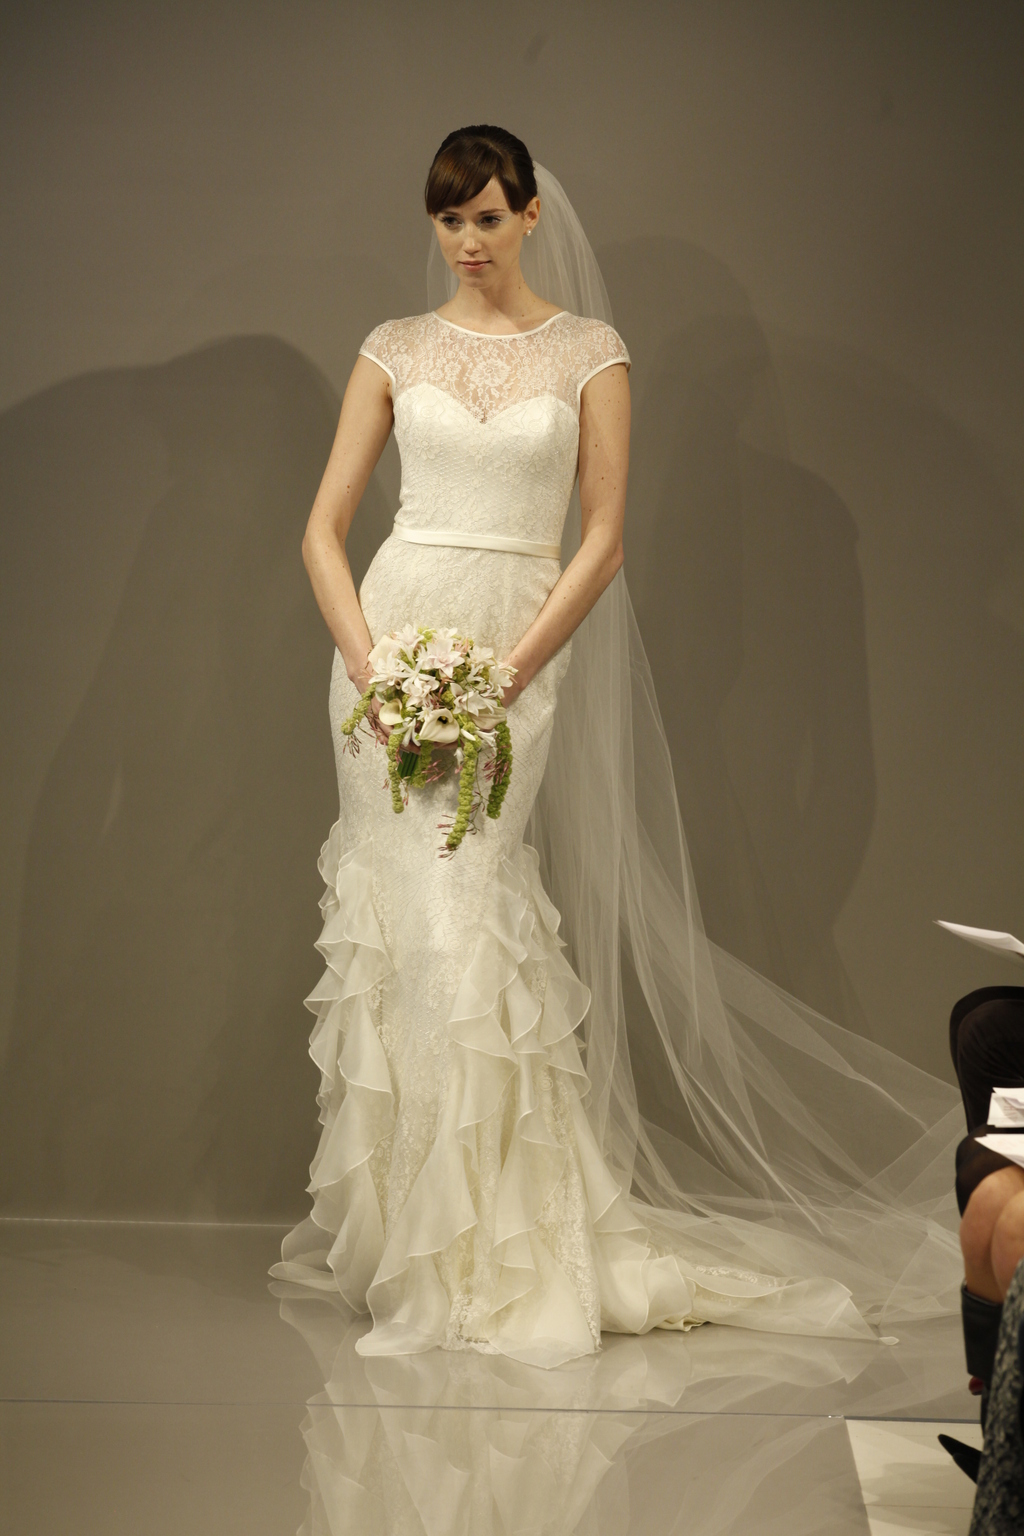 Theia-white-collection-wedding-dress-fall-2013-bridal-gown-7-890031.full